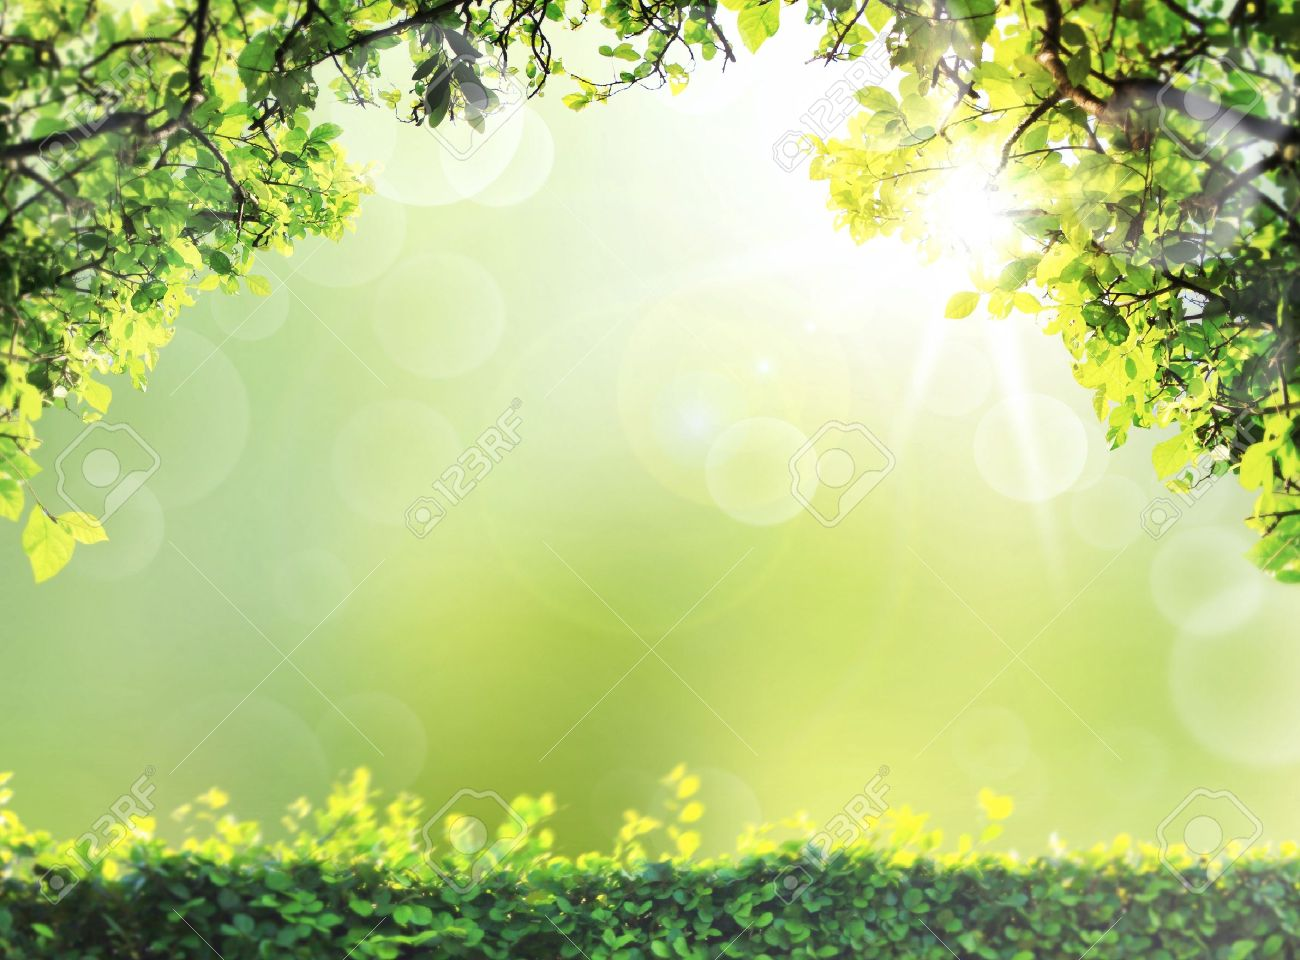 Natural Green Spring Or Summer Season Abstract Nature Background